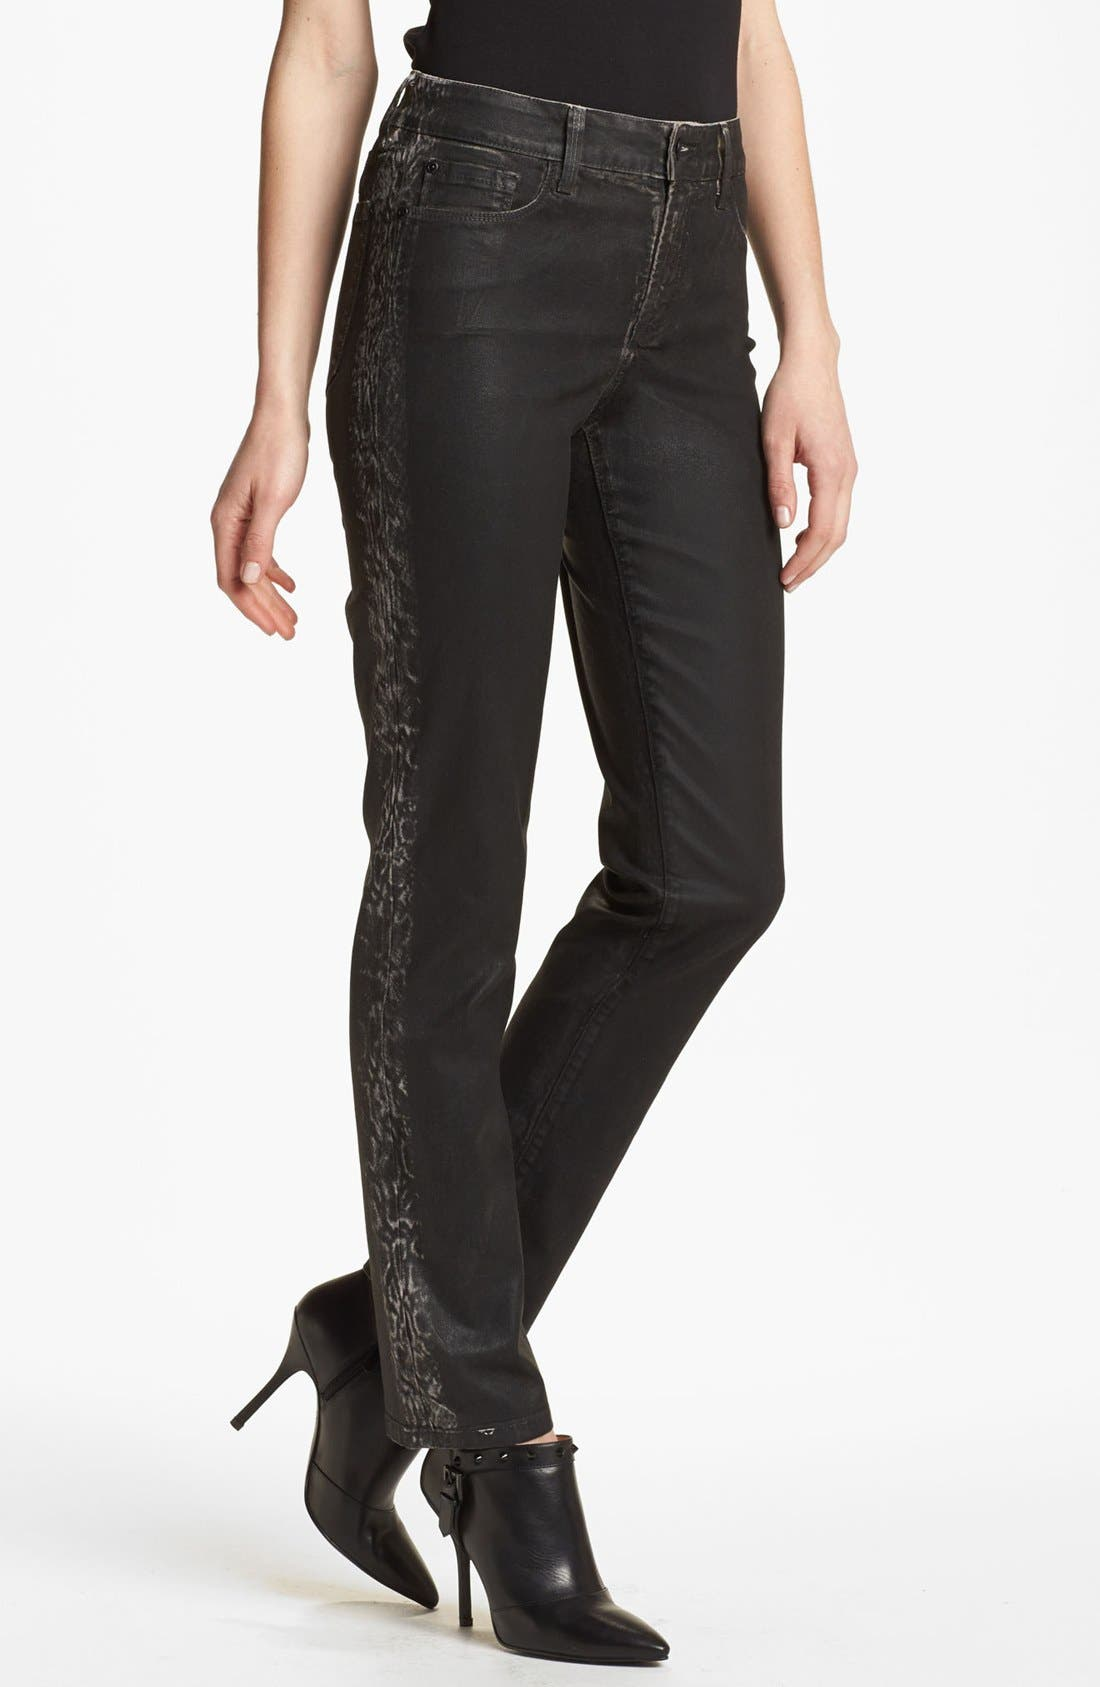 Main Image - NYDJ 'Sheri' Tuxedo Stripe Coated Skinny Jeans (Regular & Petite)